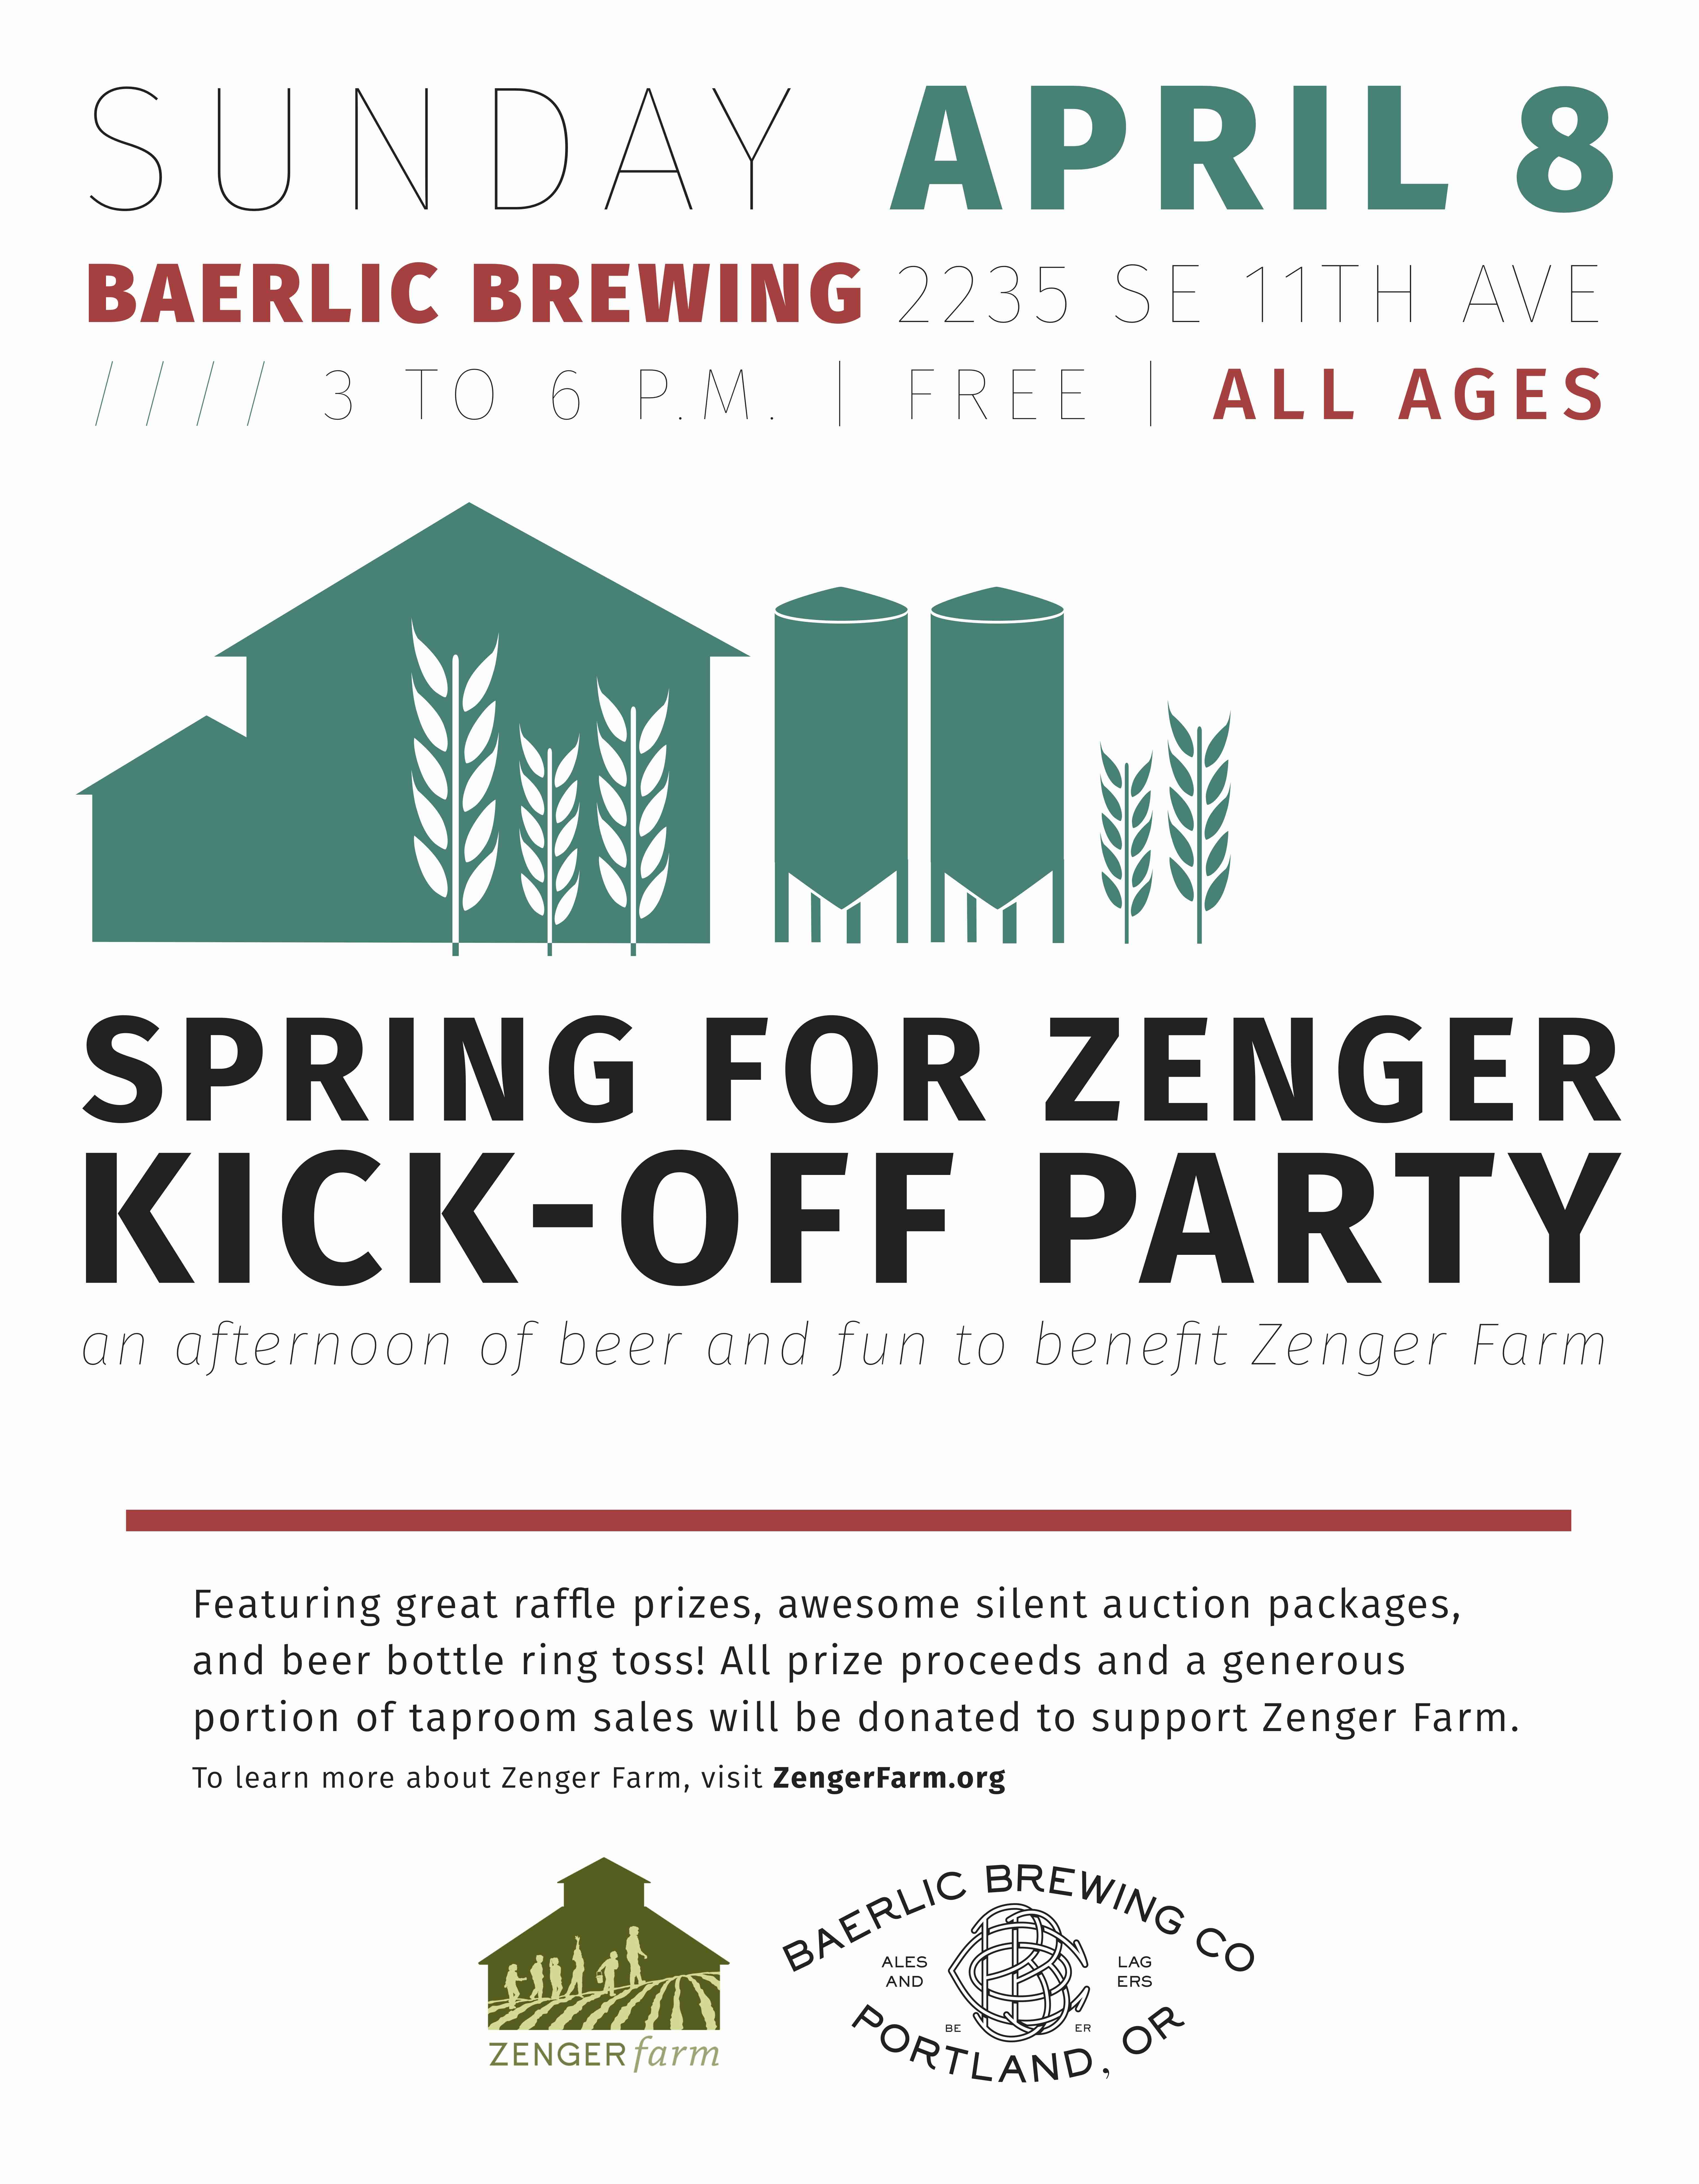 Spring for Zenger KickOff Party at Baerlic Brewing